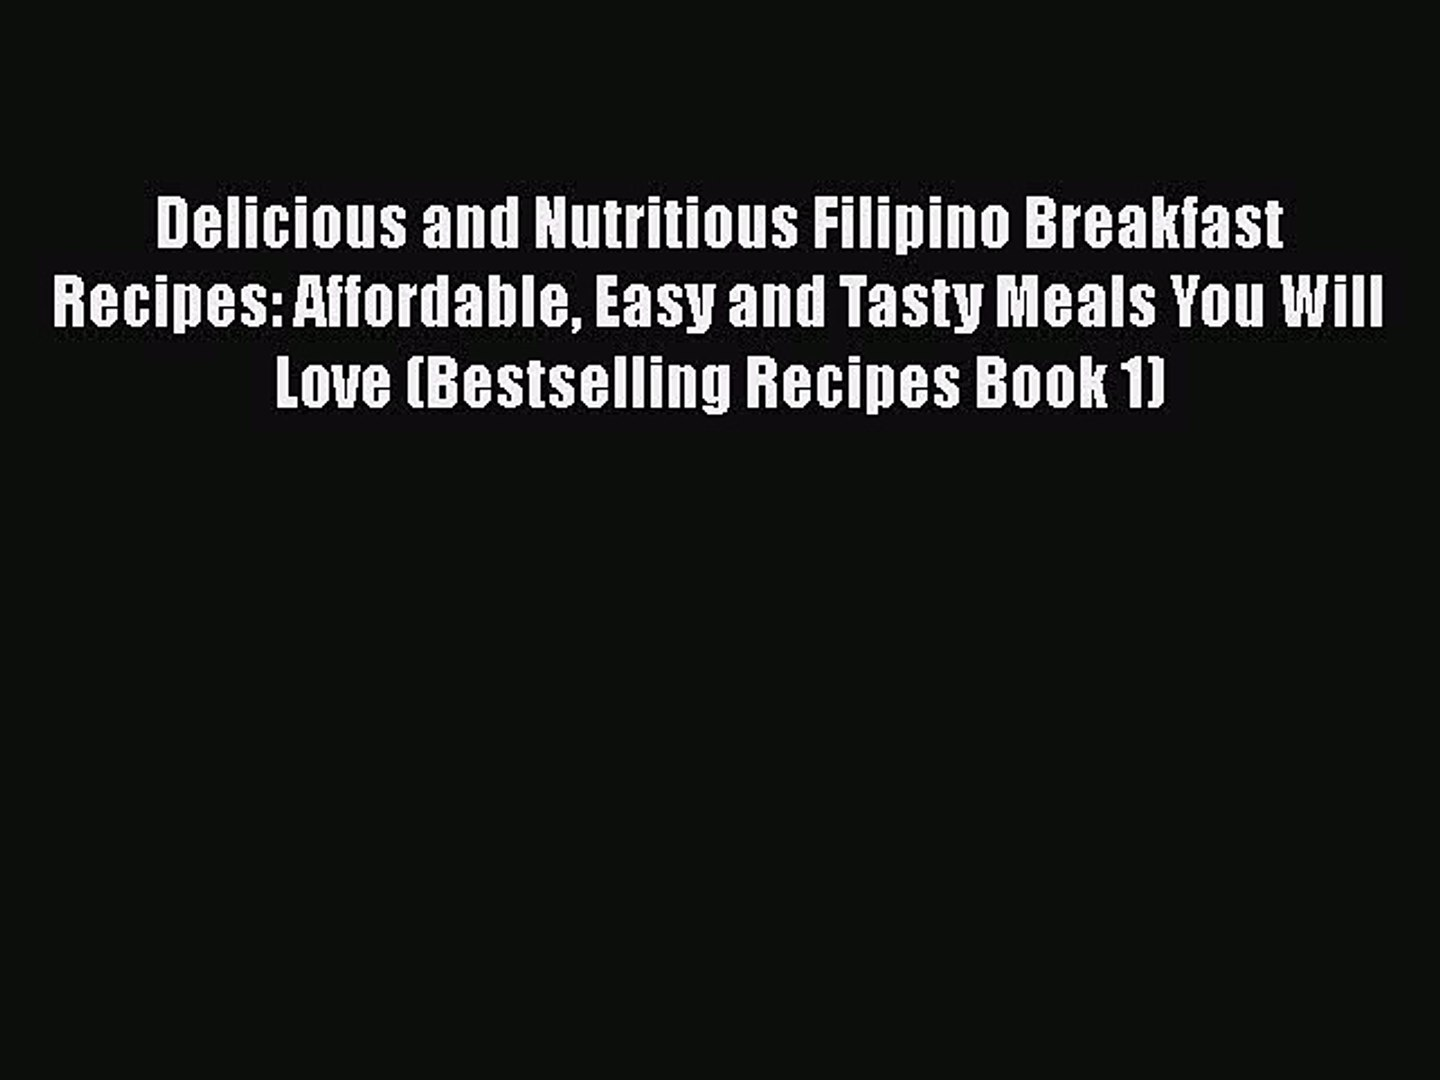 Pdf Delicious And Nutritious Filipino Breakfast Recipes Affordable Easy And Tasty Meals You Video Dailymotion